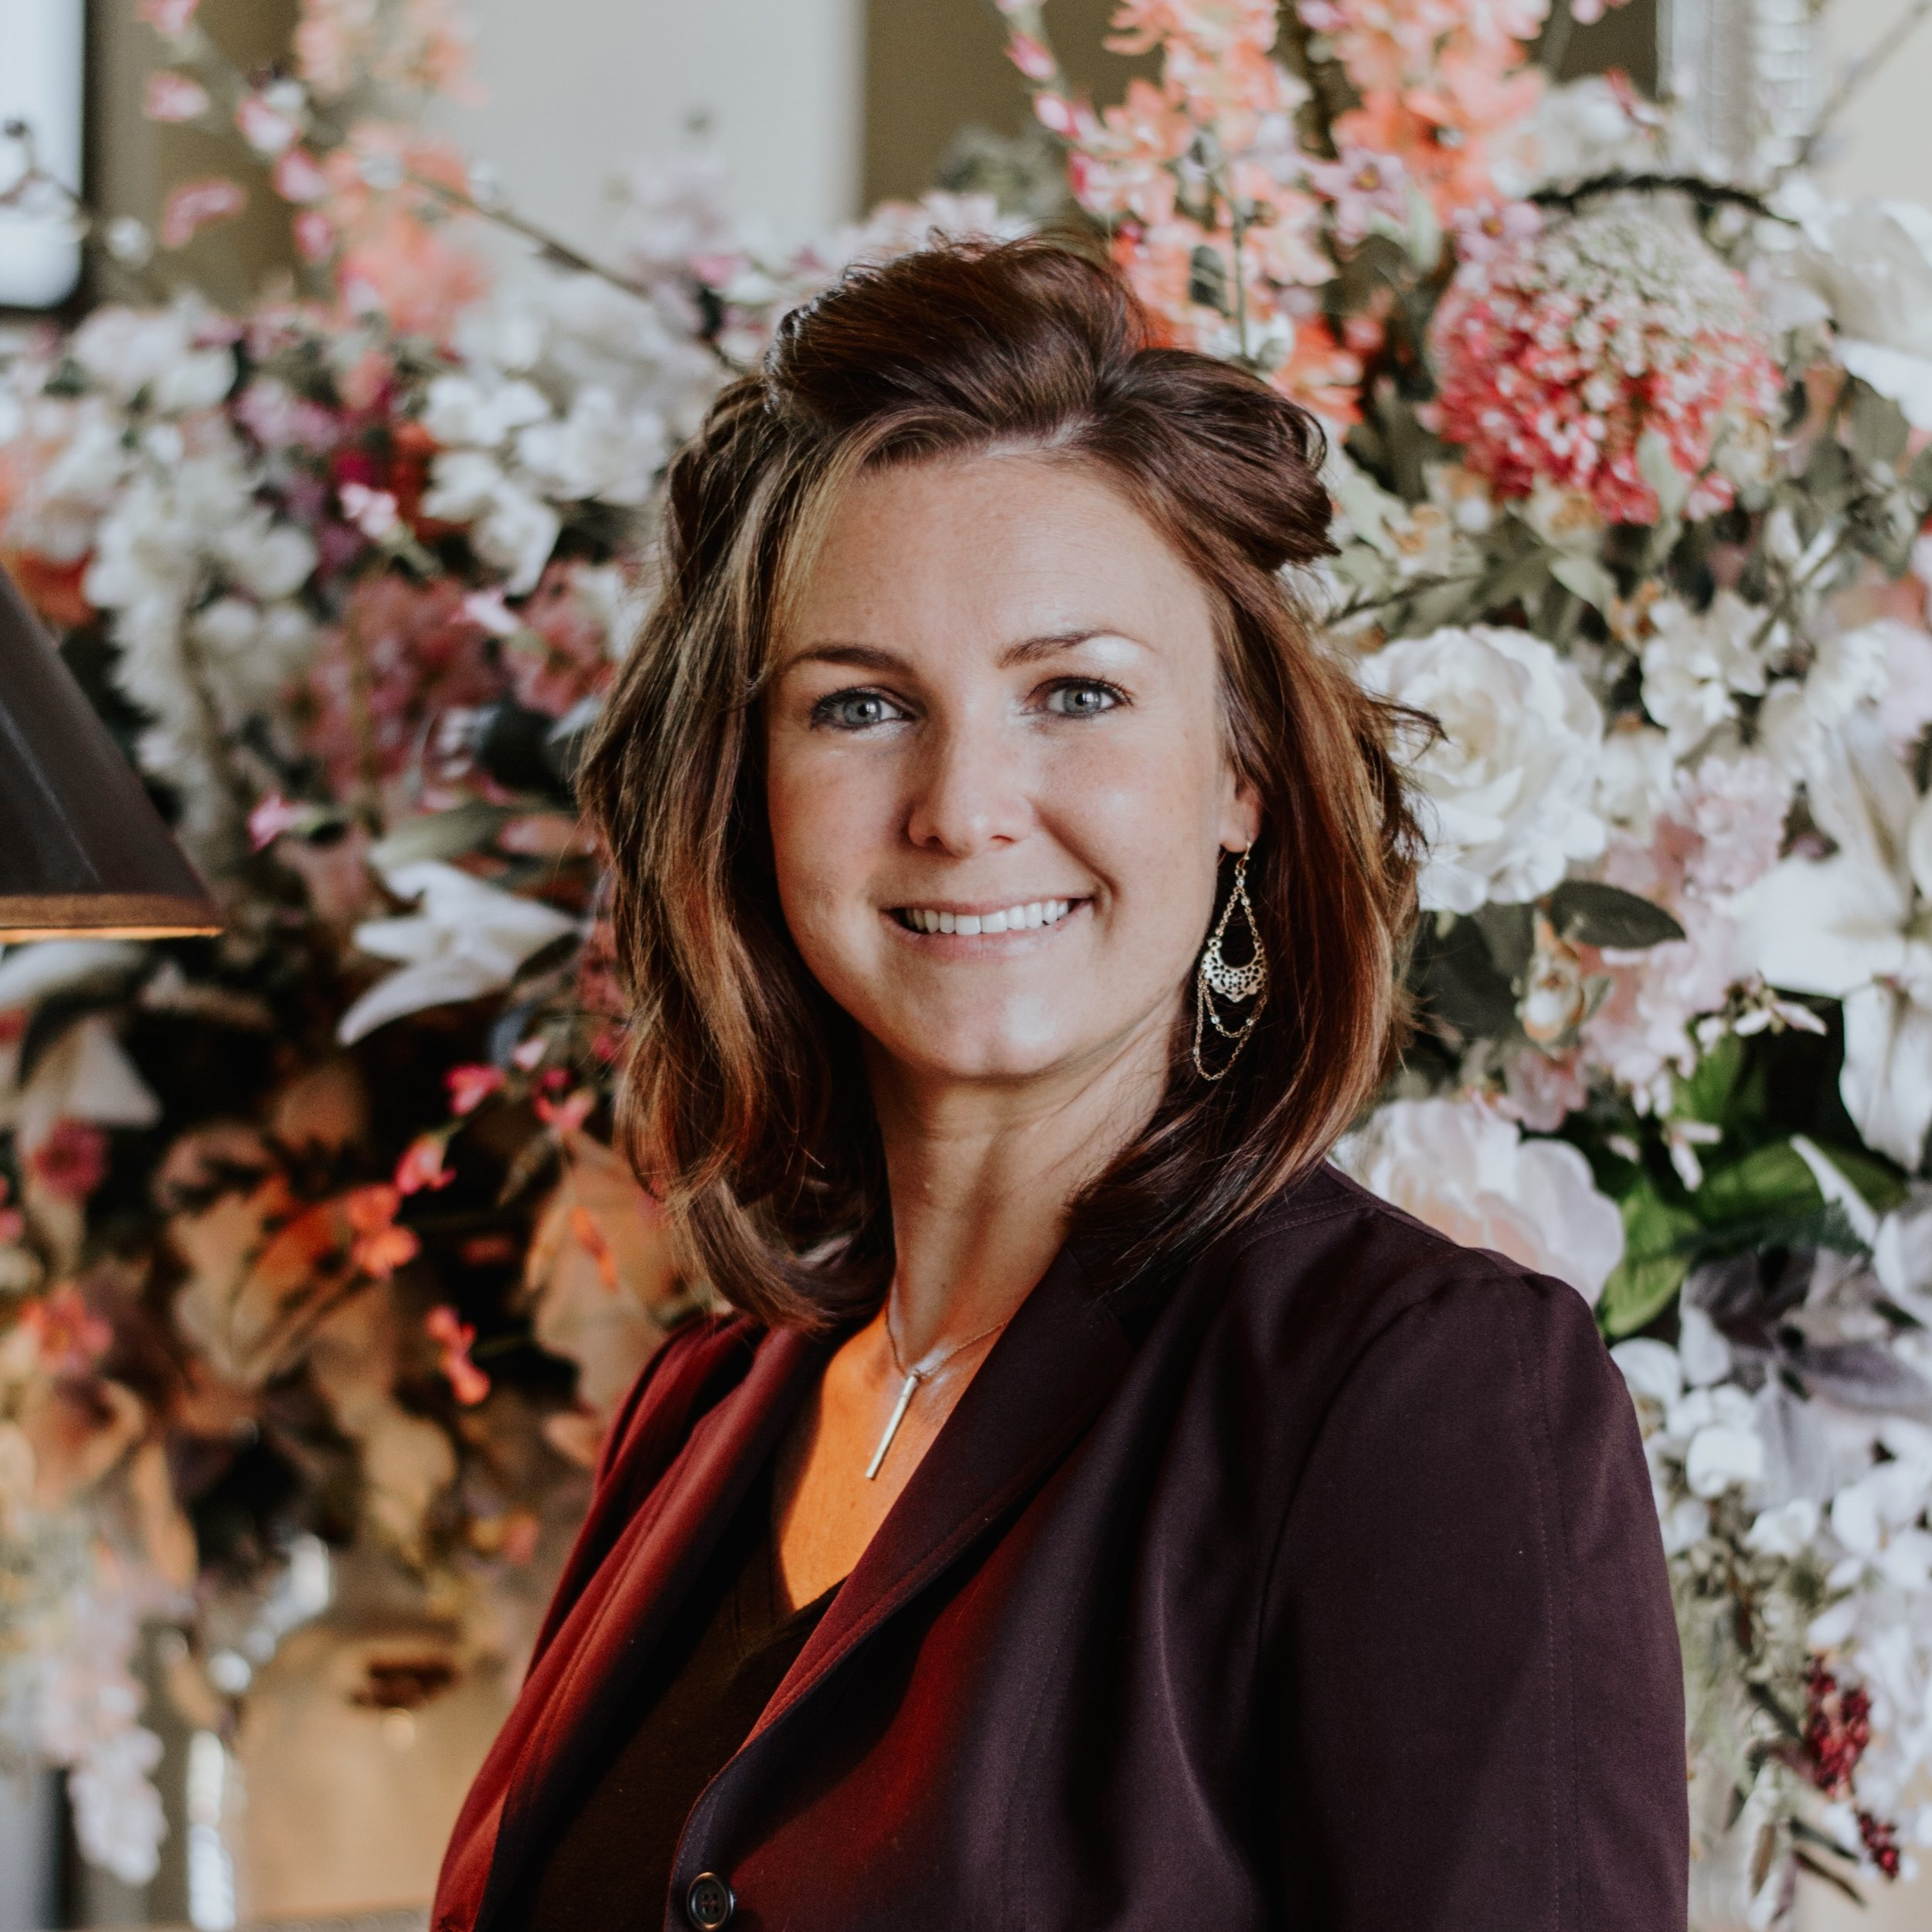 """Tina Cebrynski : """"I always knew I would be successful selling real estate from my previous experience as a business owner but I never knew I would be able to have so much freedom in the process. I owe that freedom to you Ronnie. Thank you!"""""""